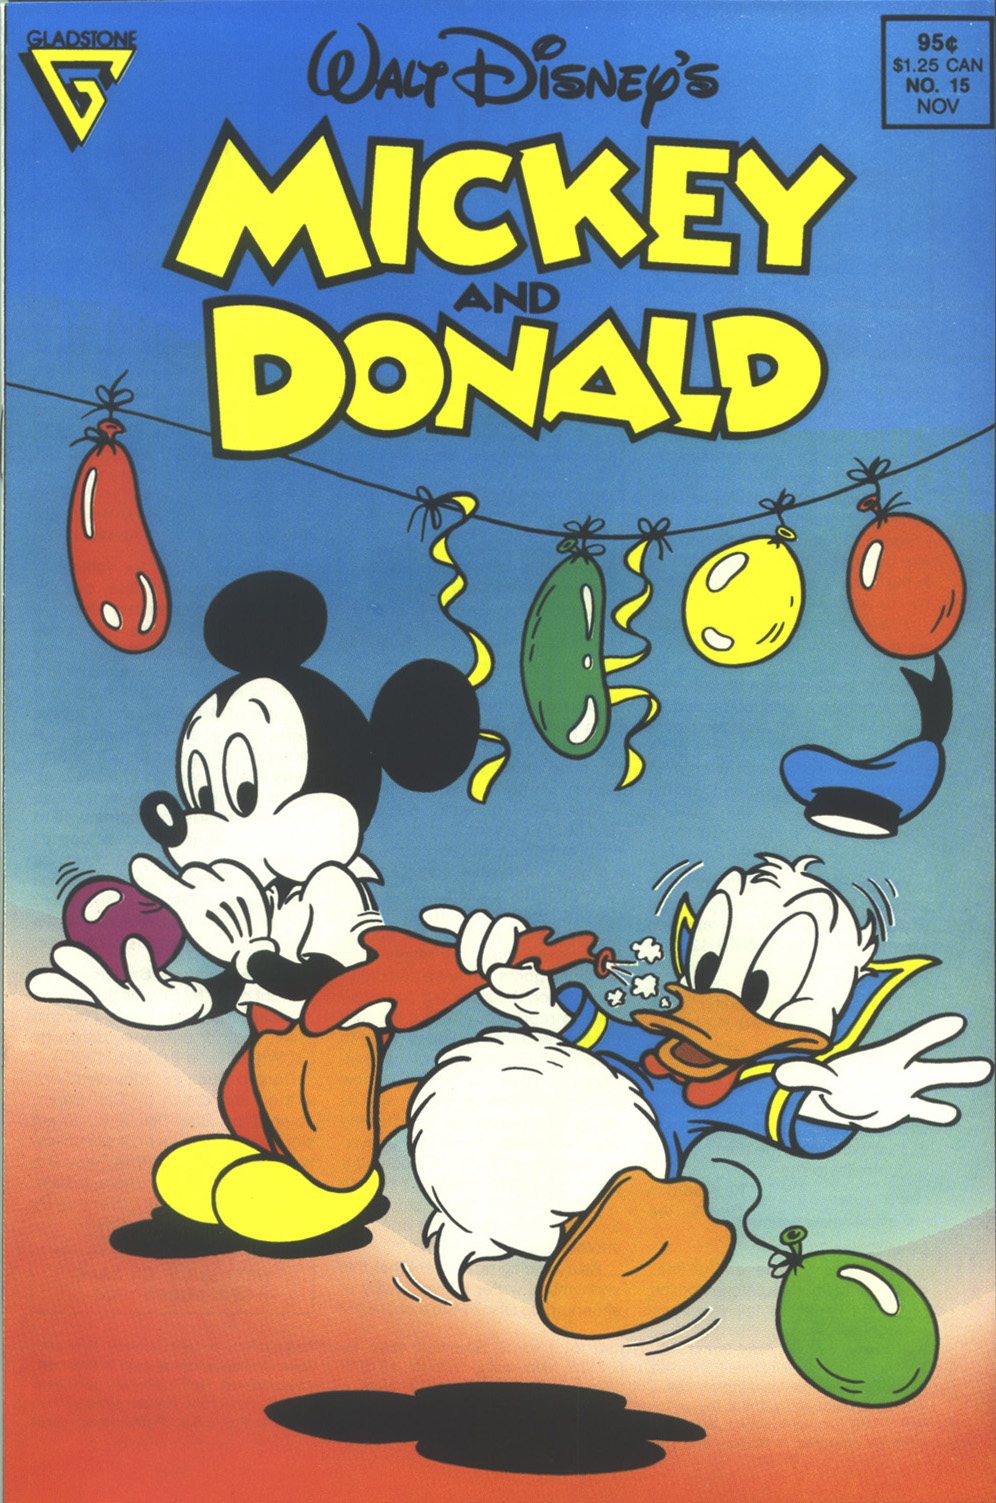 Walt Disneys Mickey and Donald issue 15 - Page 1